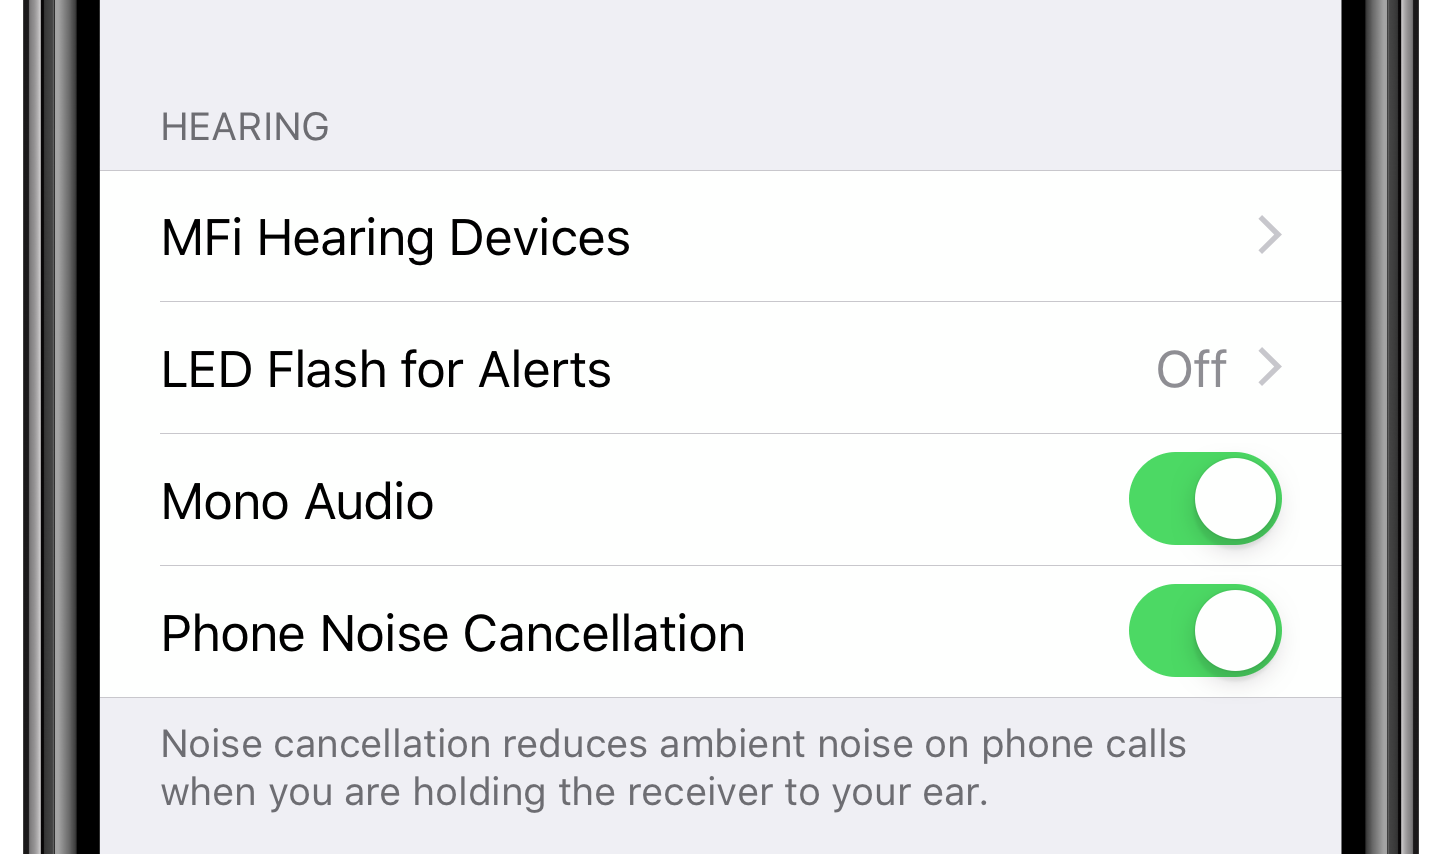 how to enable AirPods mono audio  on iPhone